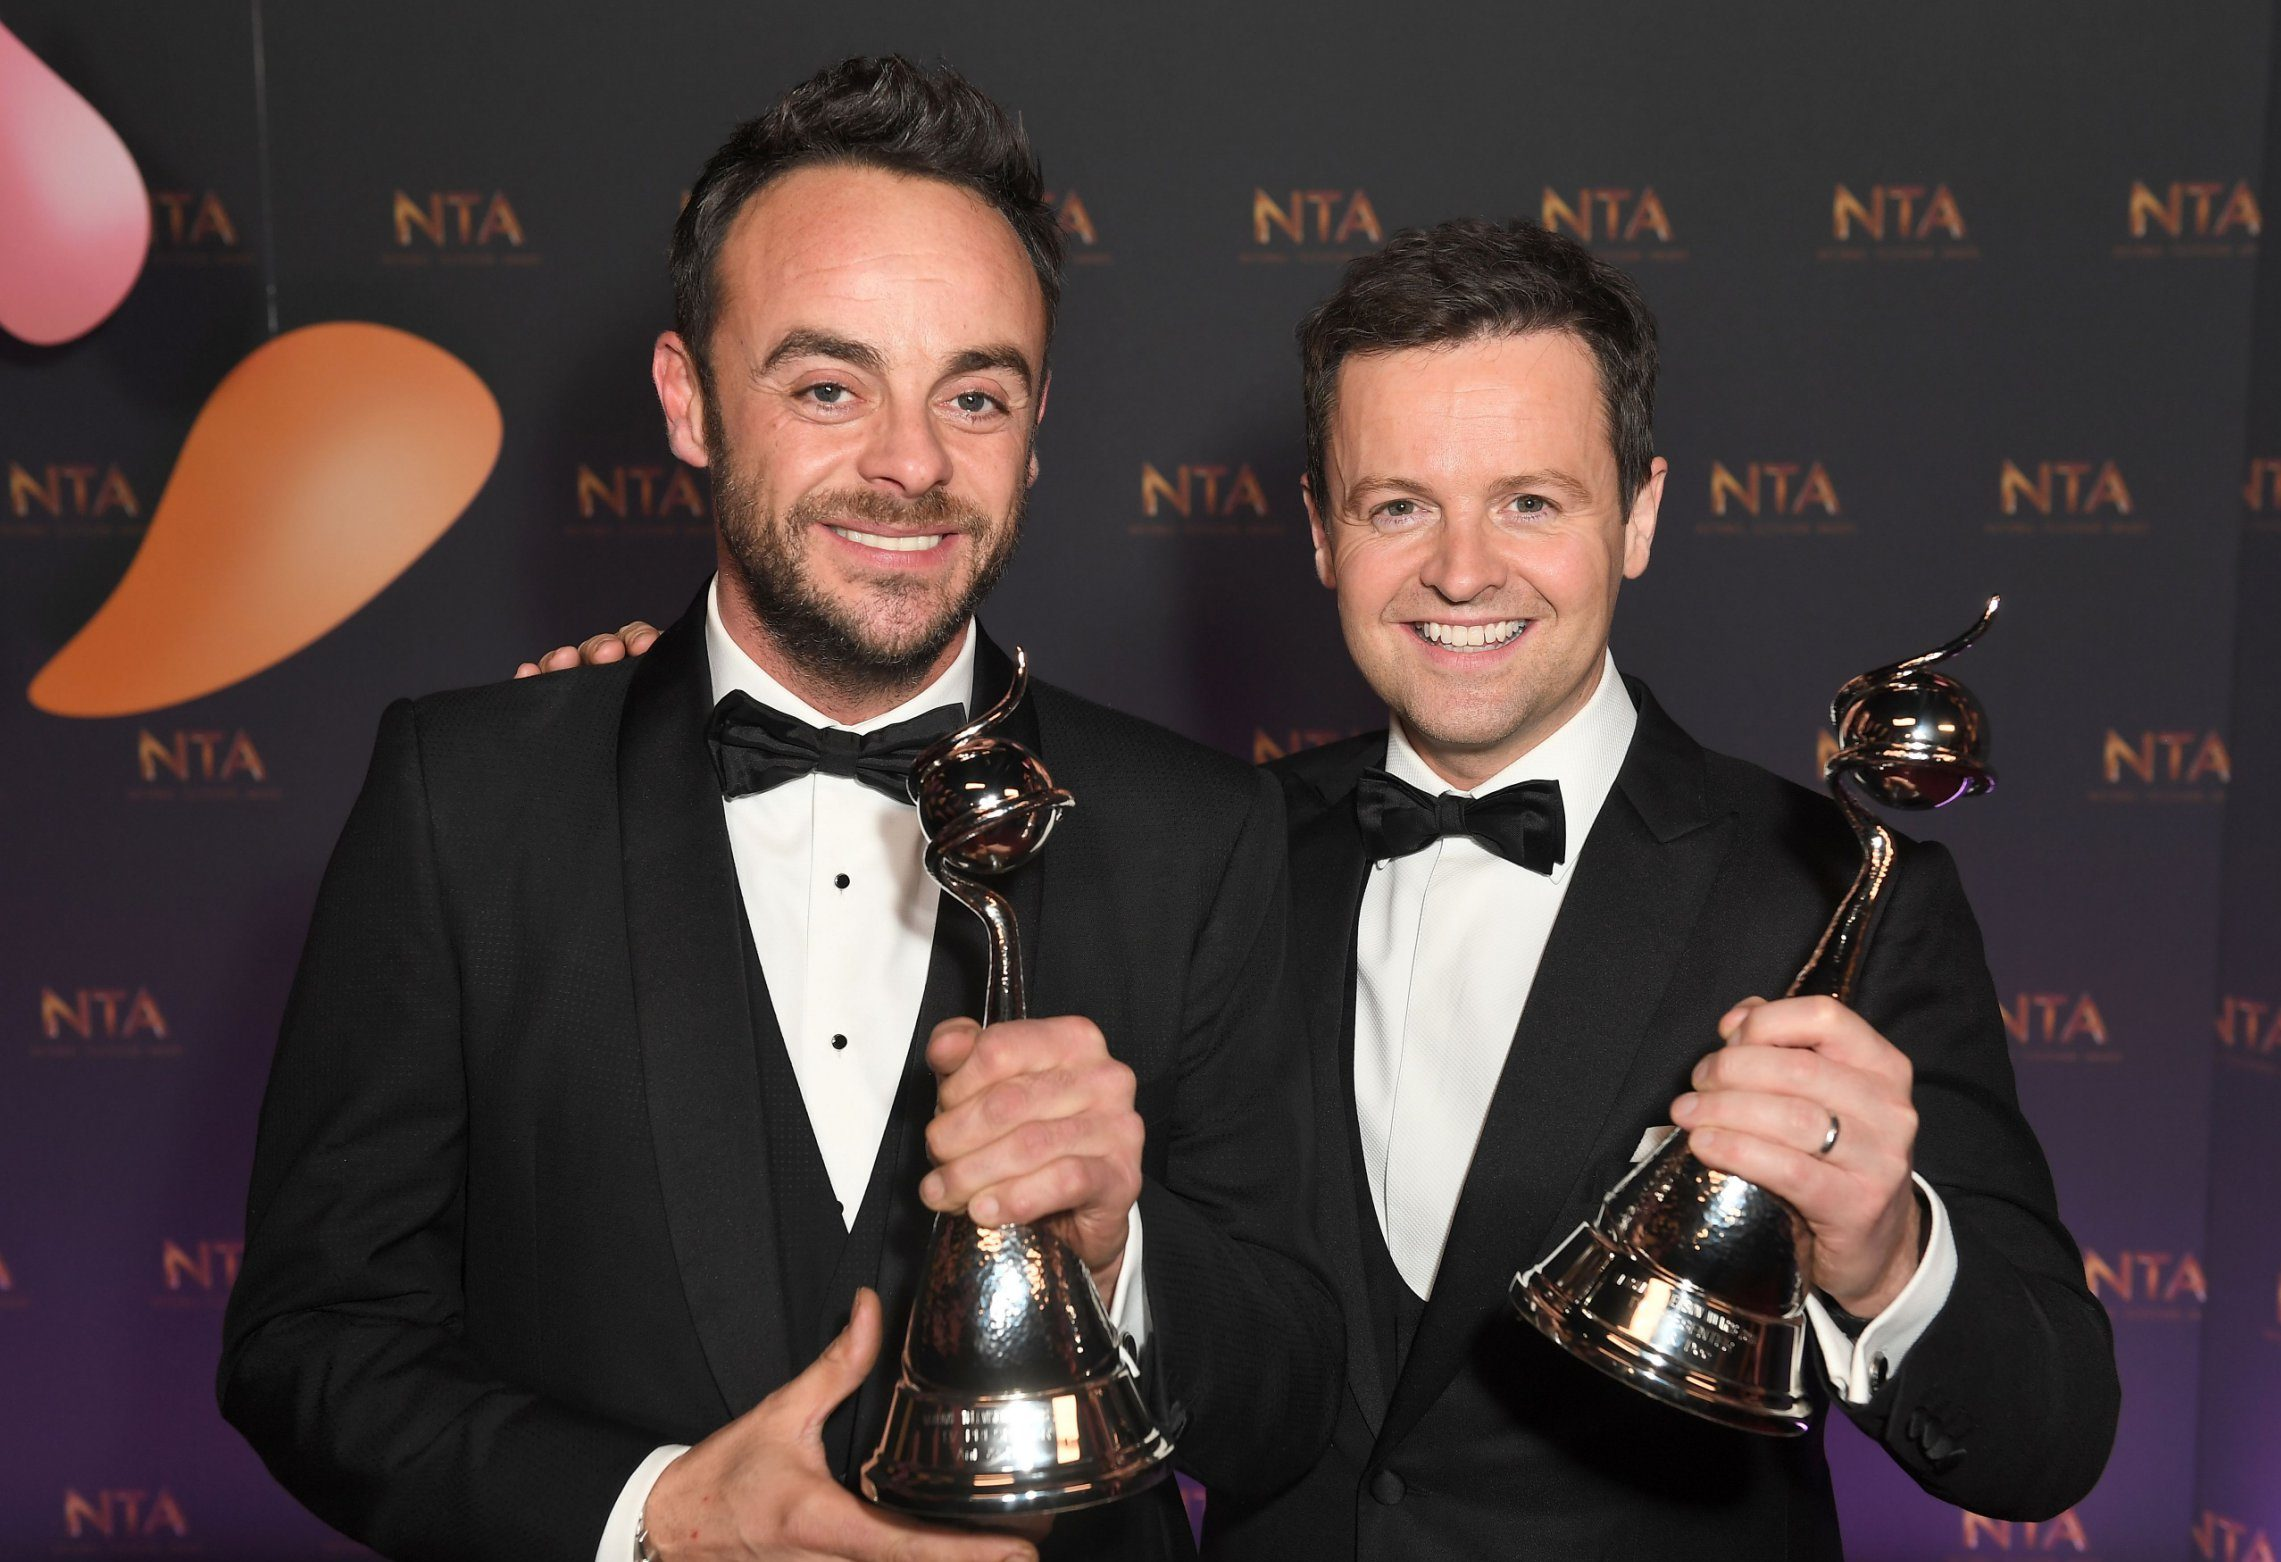 Ant McPartlin may not turn up to the NTAs next year as it's too emotional